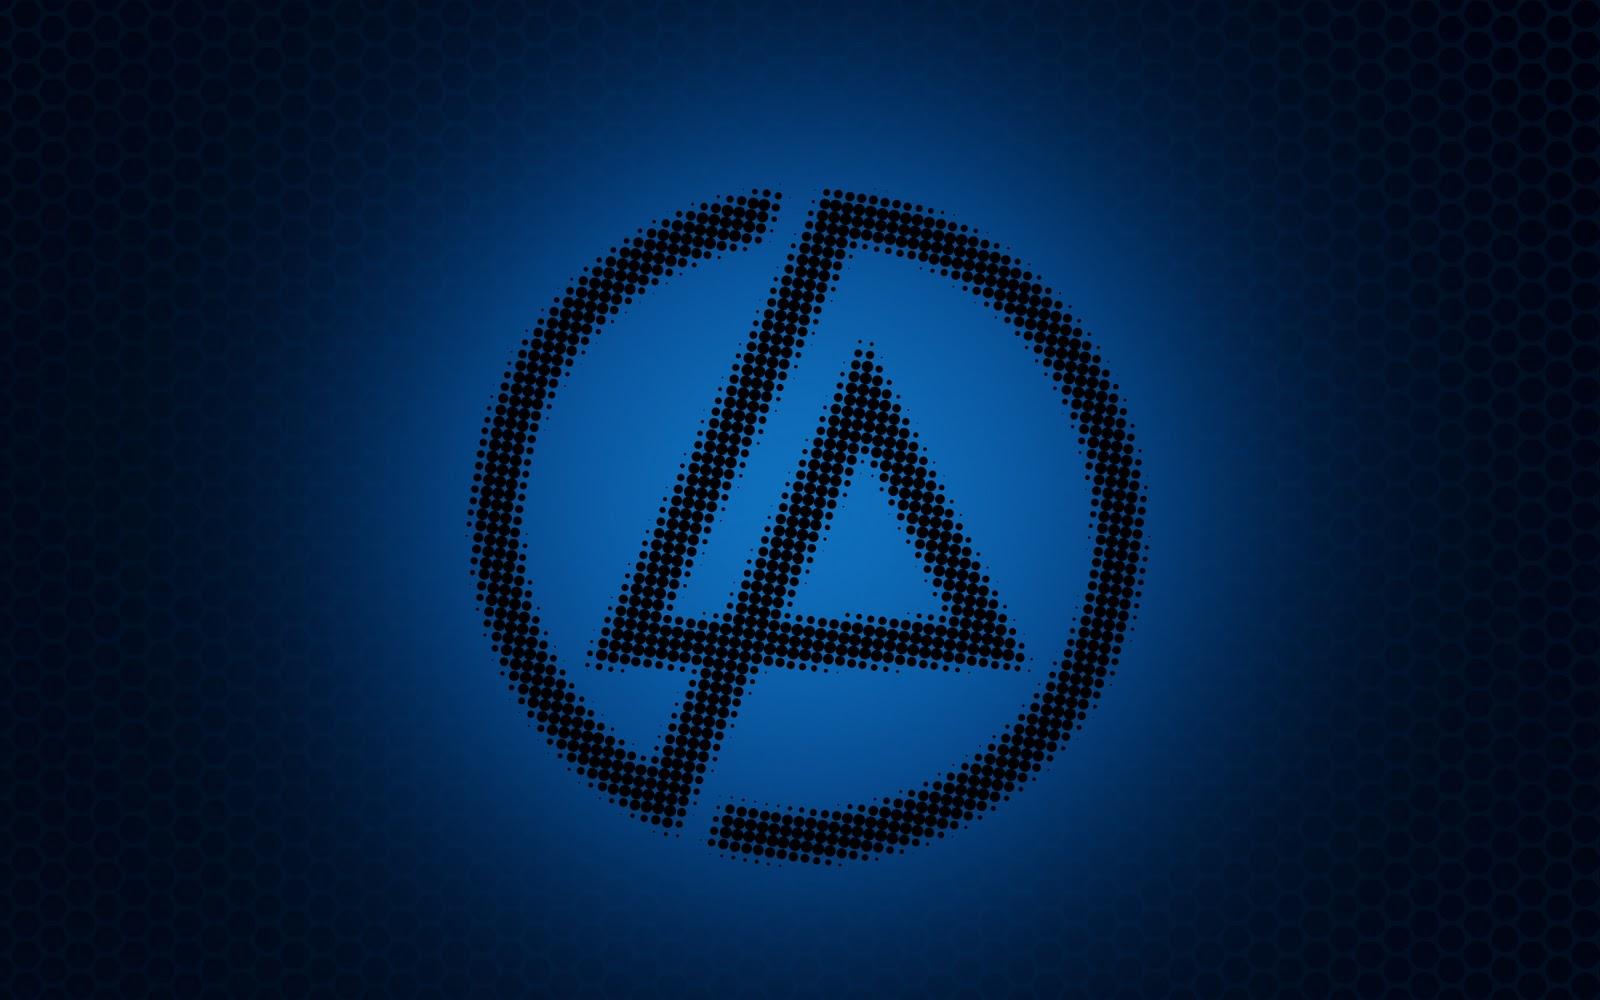 linkin park burning in the skies wallpapers - Linkin park burning in the skies LG G4 Wallpaper